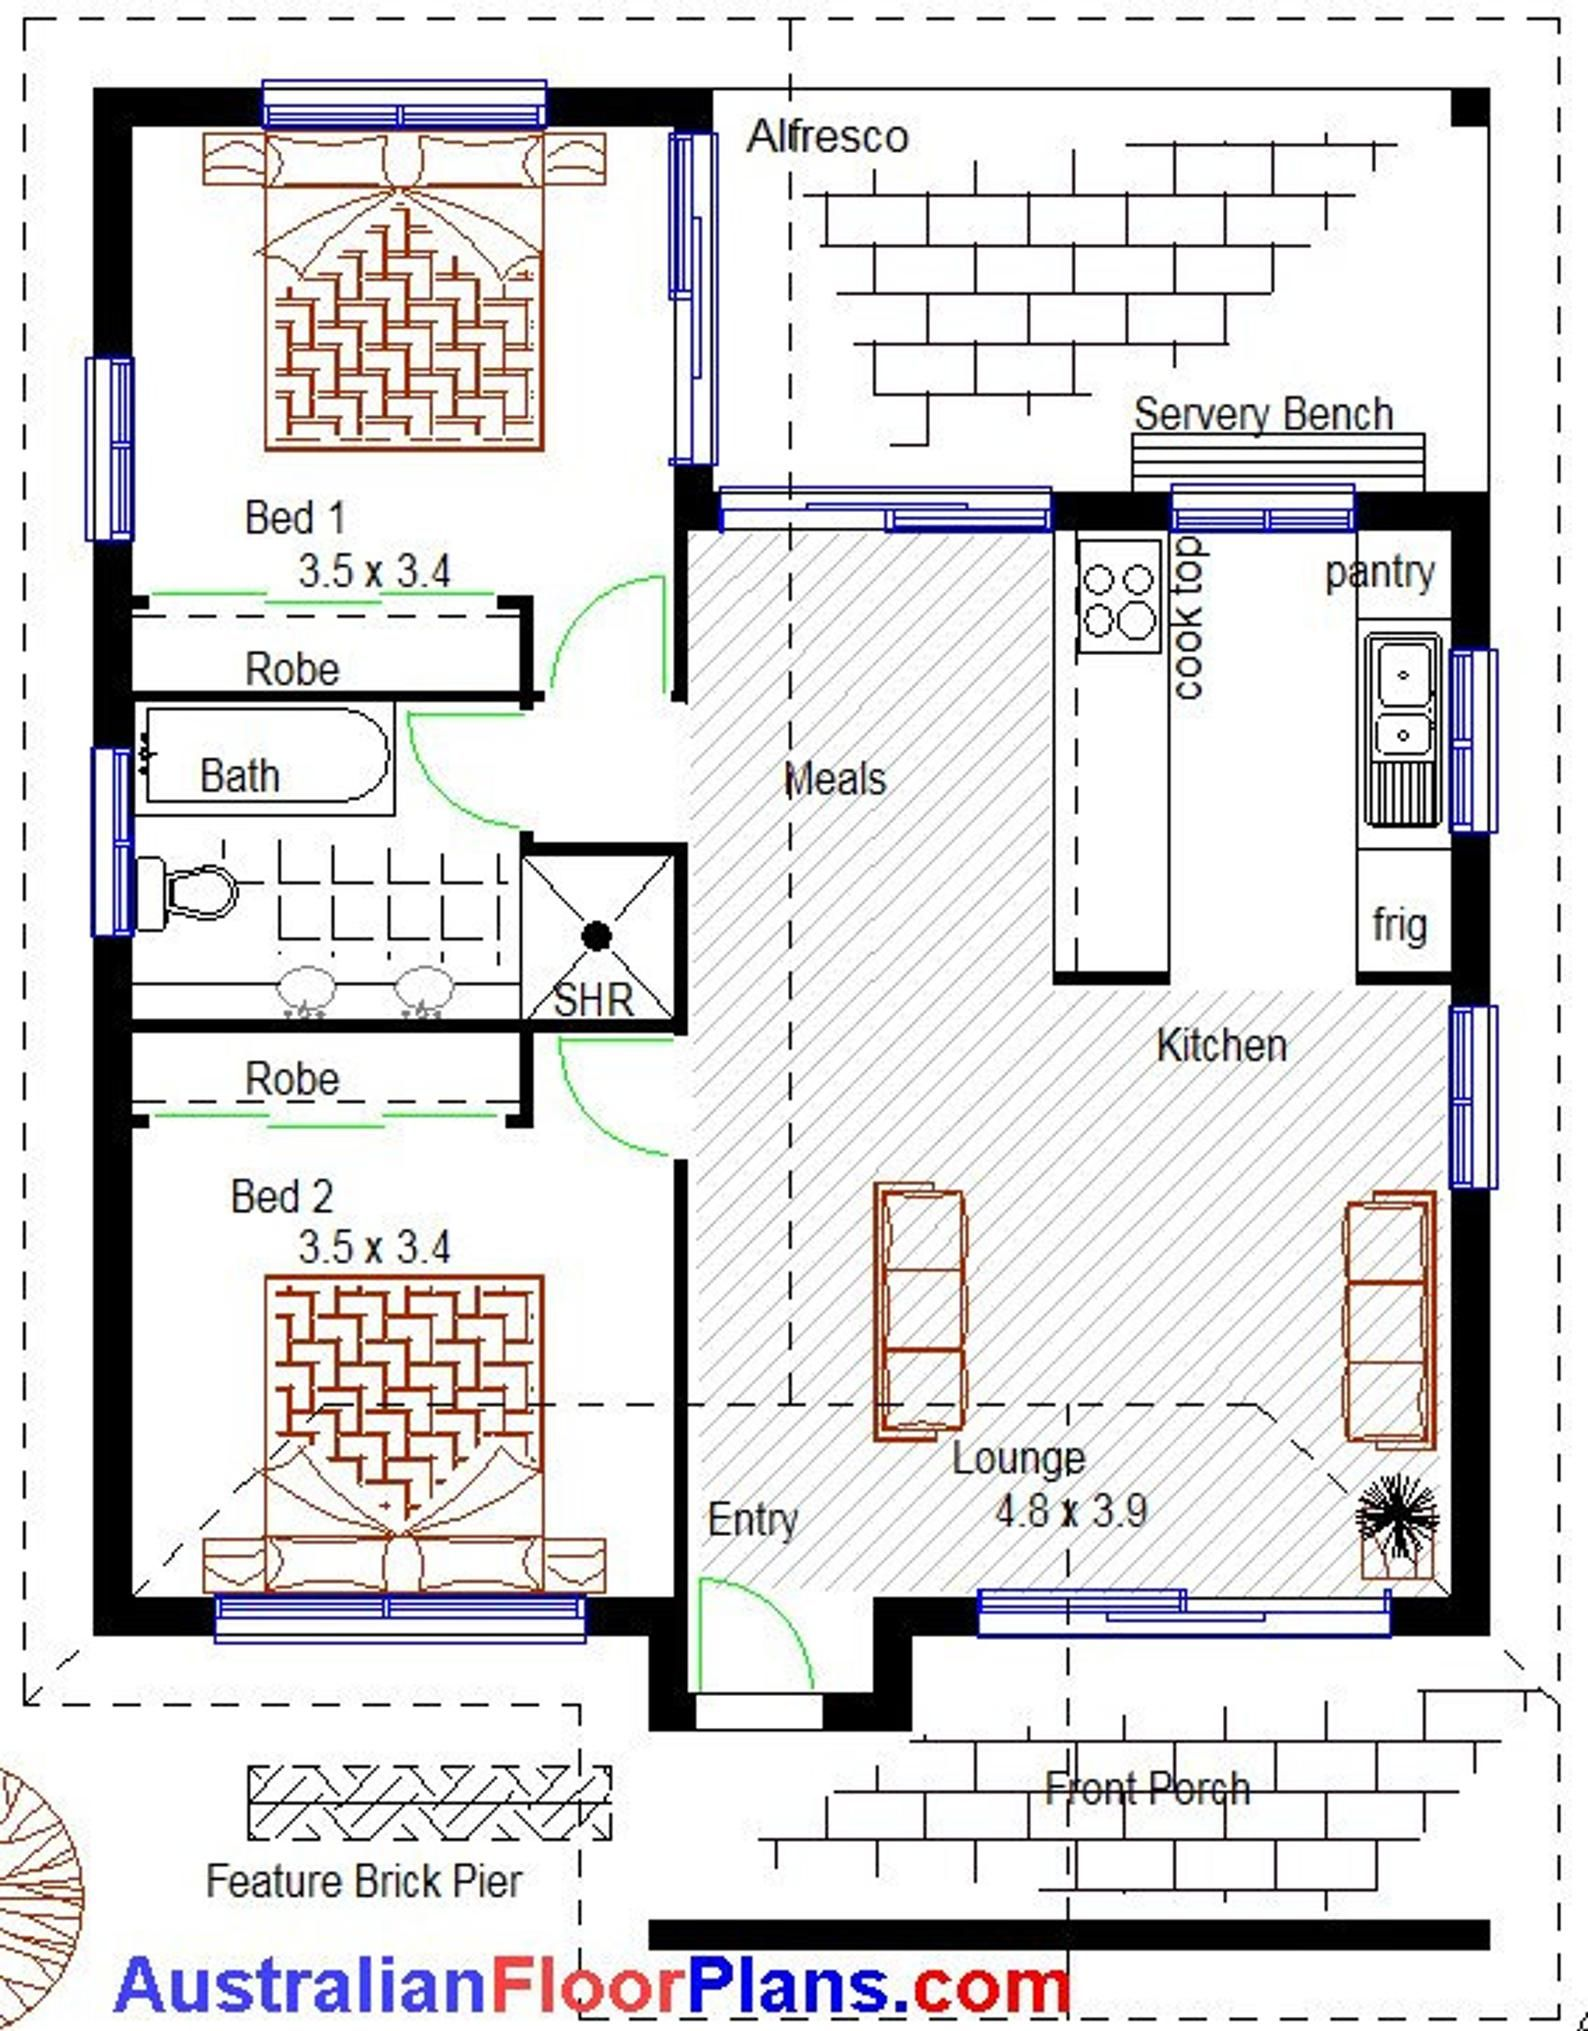 785 Sq Foot 73 M2 Two Bedroom Granny Flat 2 Bed Two Etsy House Construction Plan Granny Flat Plans House Floor Plans